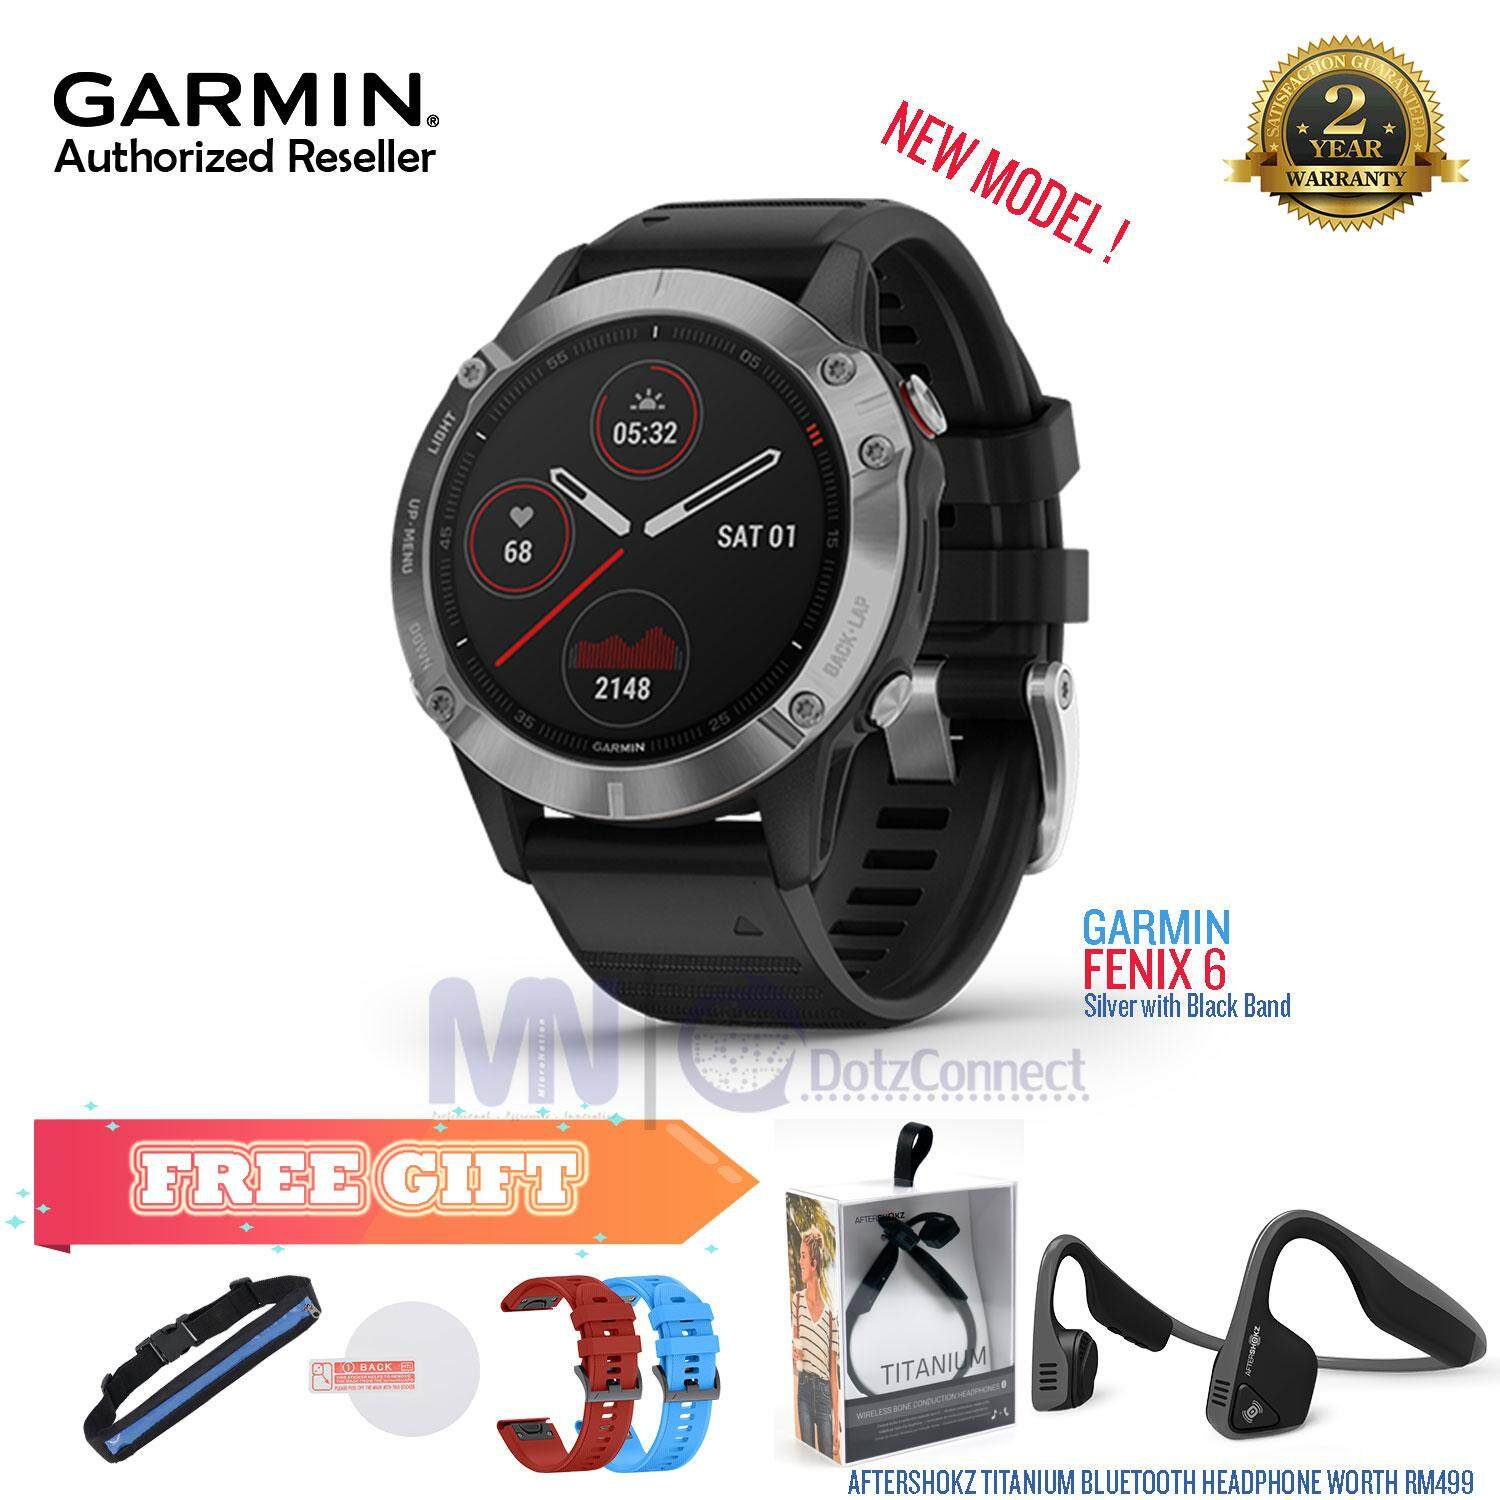 Garmin Fenix 6 / Fenix 6 Sapphire Version Premium Multisport GPS Watches with Aftershokz Titanium [ READY STOCK ]